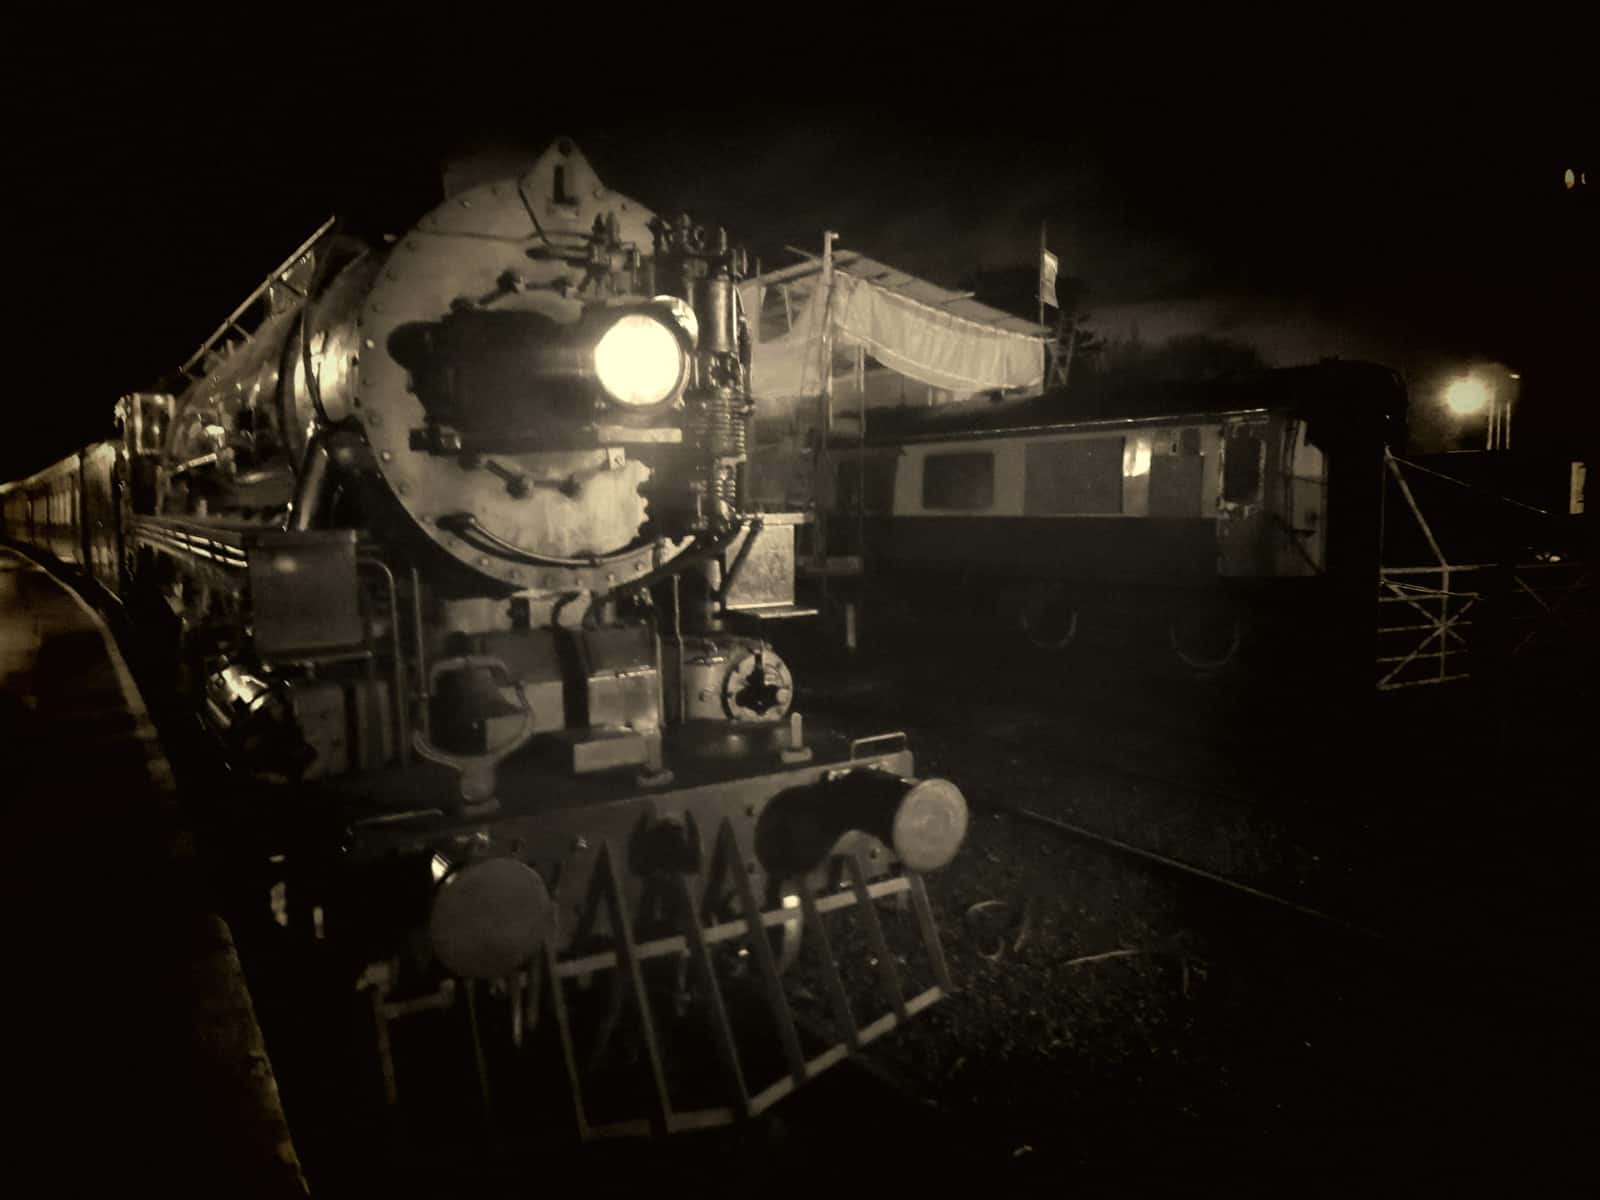 black and white photo of polar express steam engine